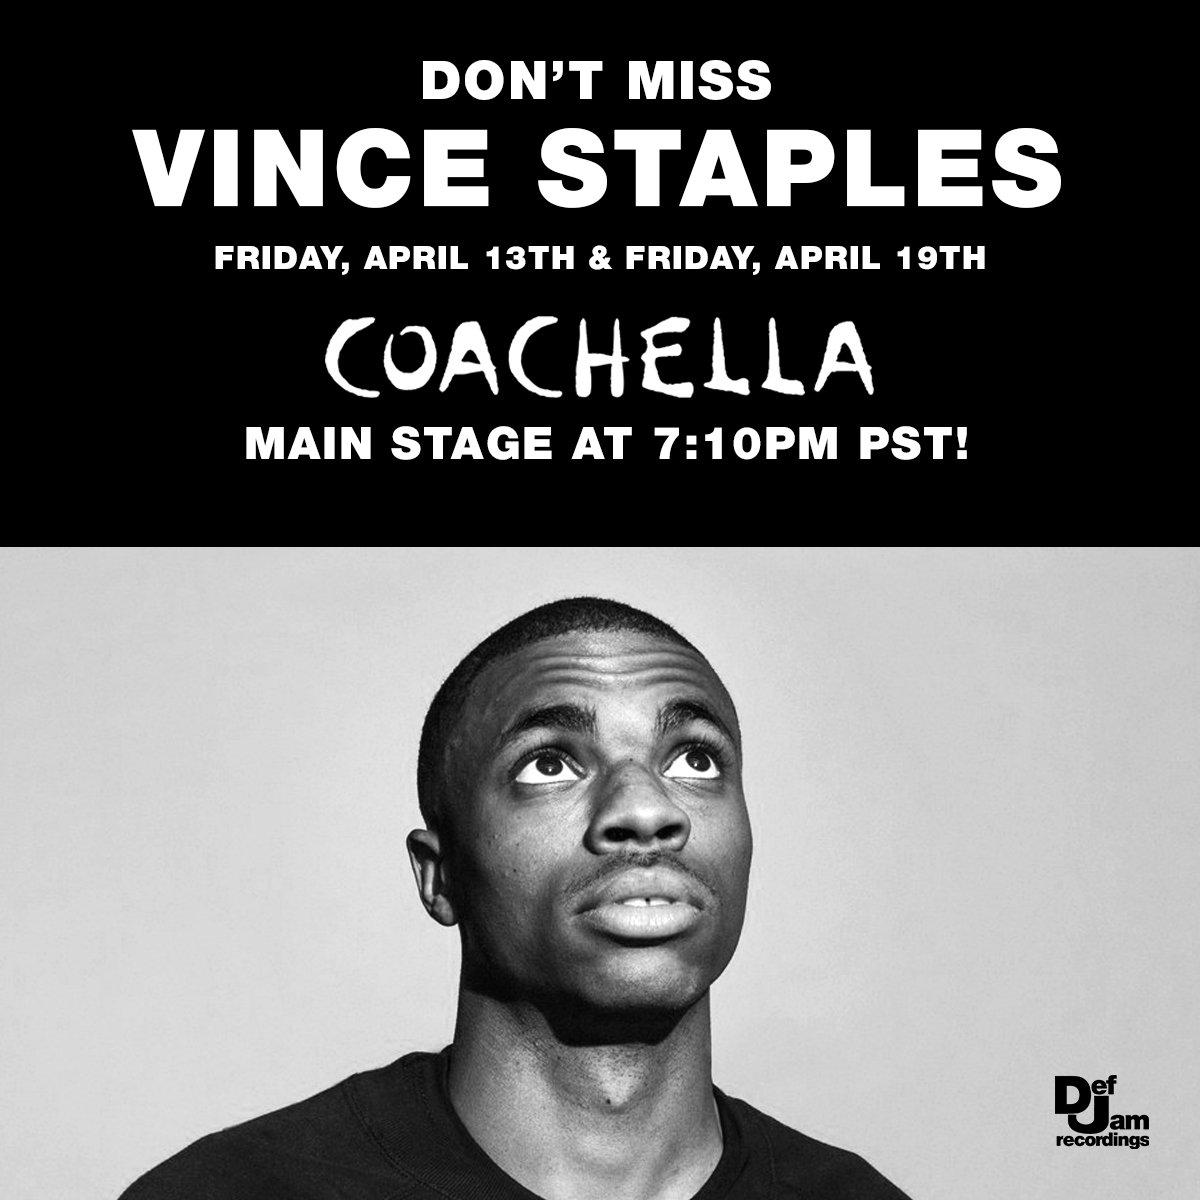 Make sure you guys don't miss @vincestaples at @coachella 🌴 this weekend or next!